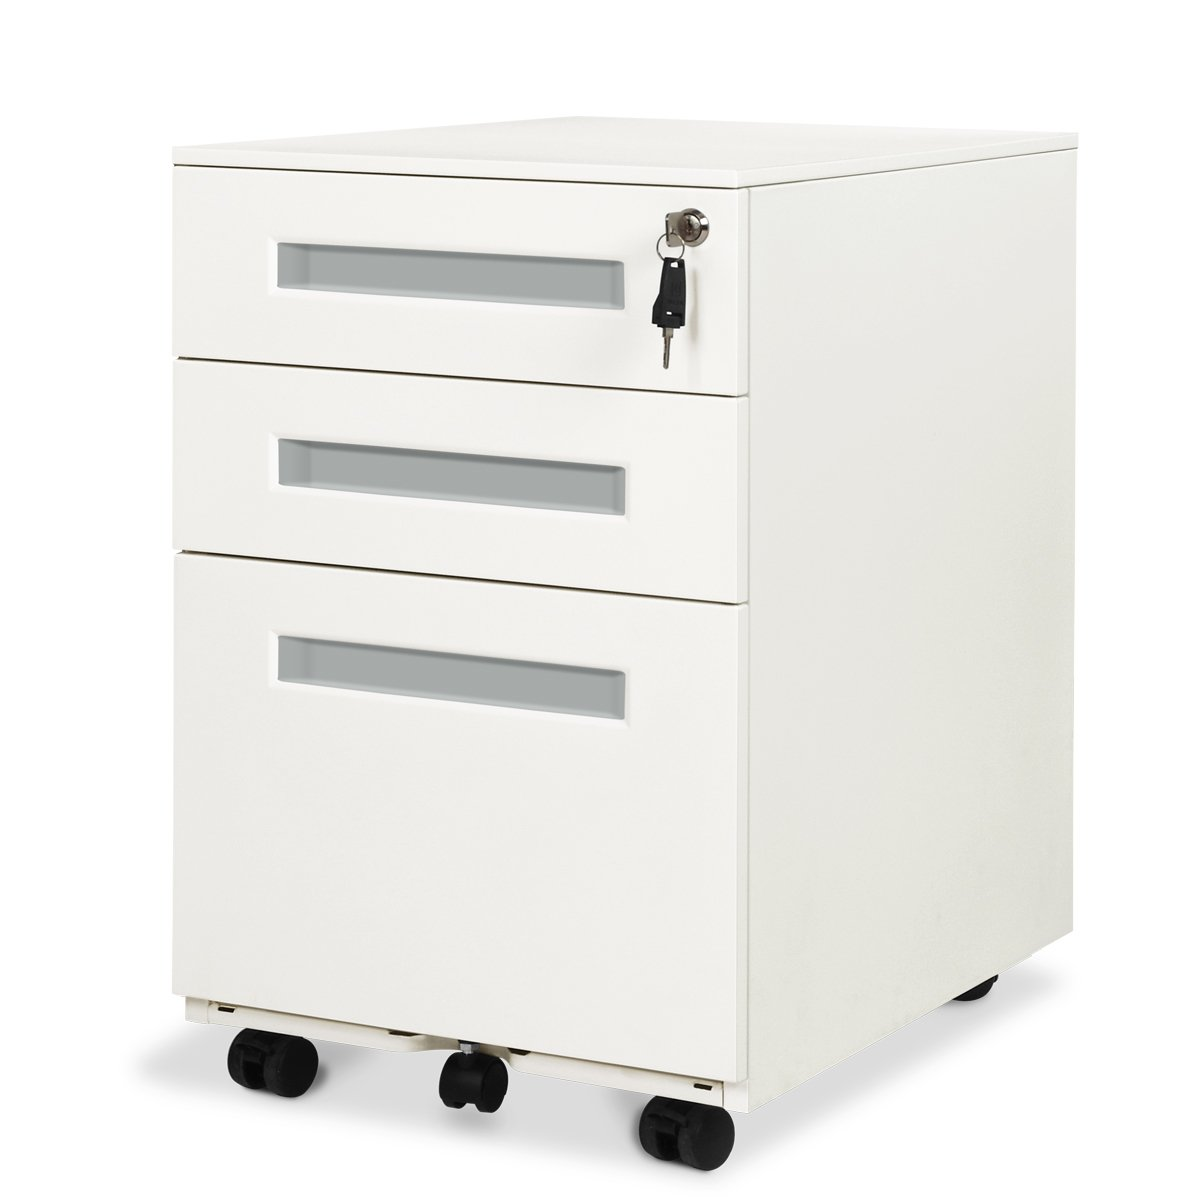 DEVAISE 3-Drawer Mobile Pedestal File Cabinet with Lock, Legal/Letter Size